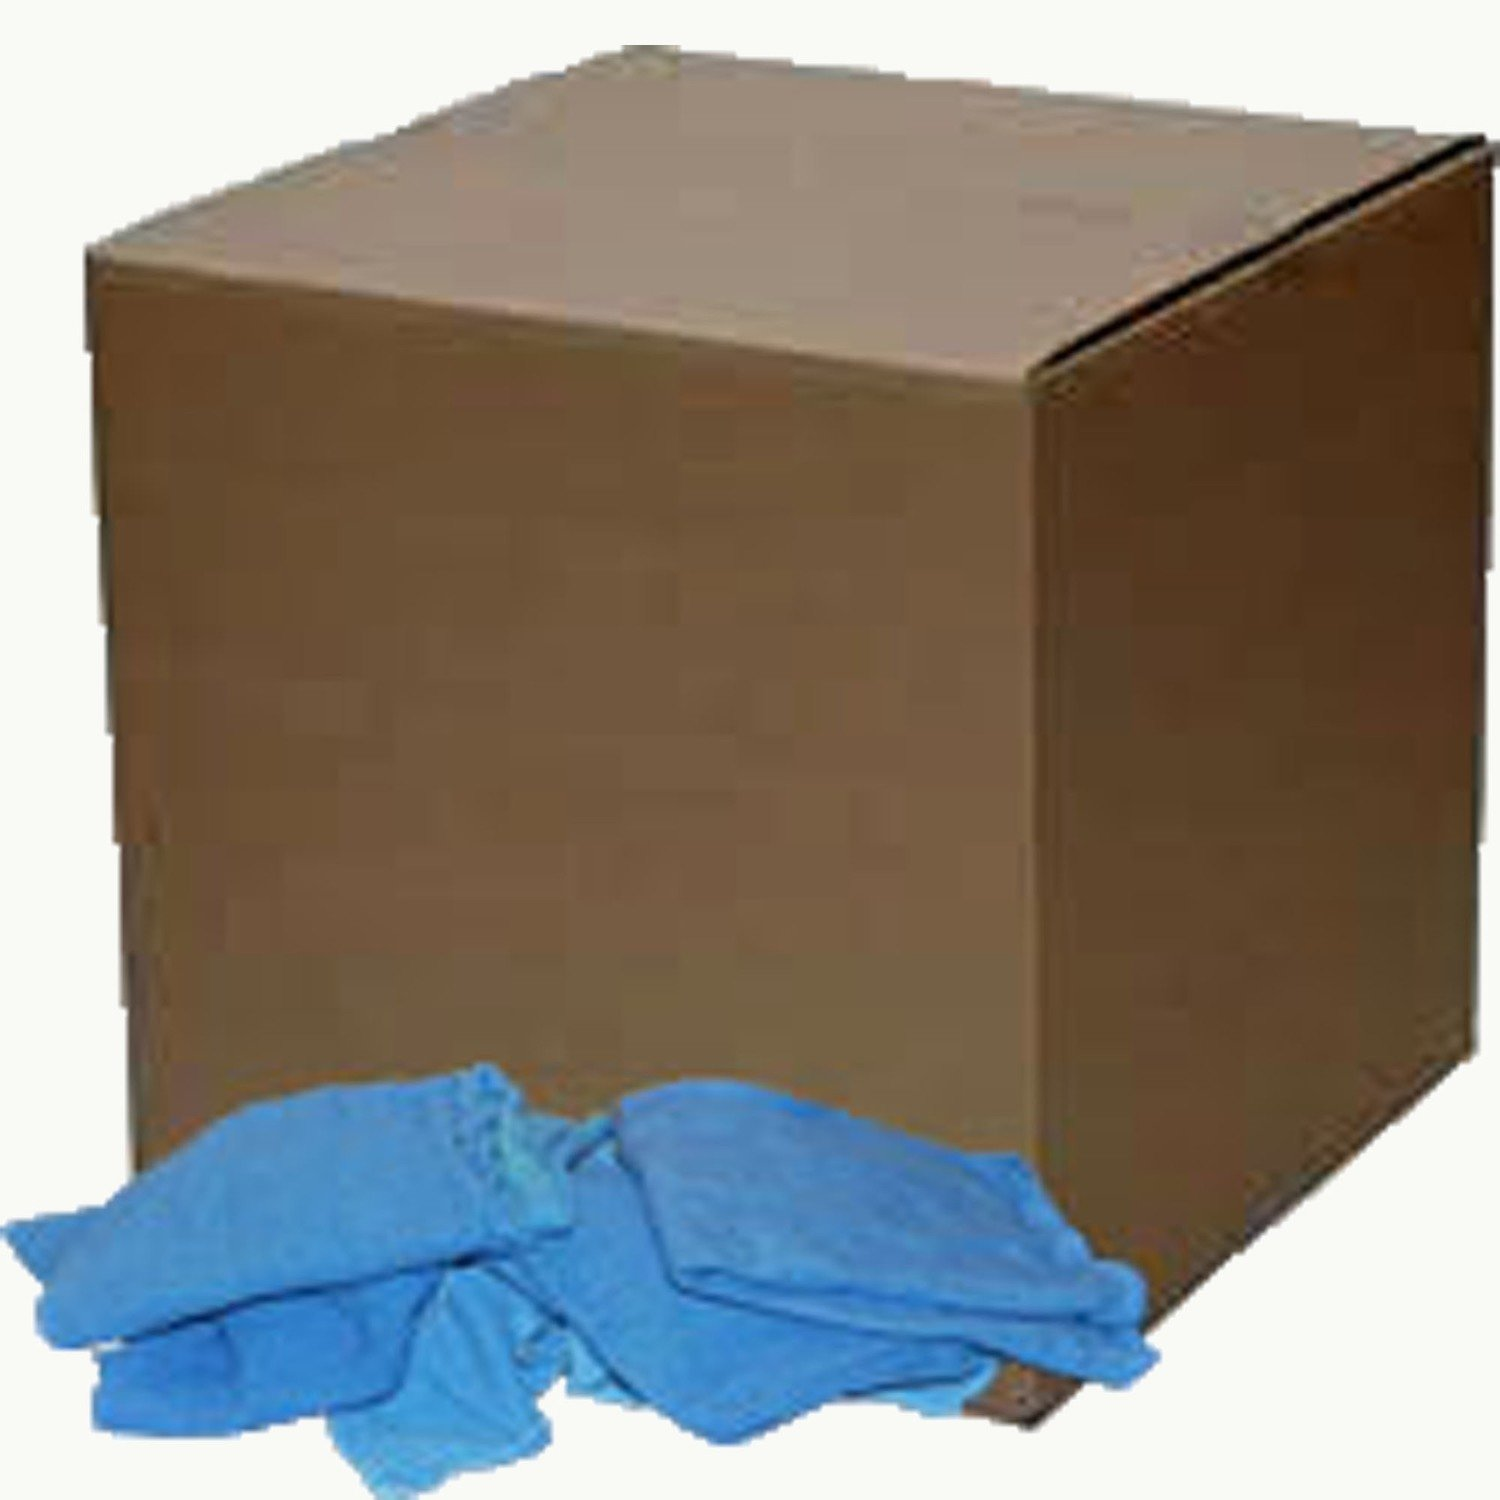 25 Lb. Box of Reclaimed Blue Huck Surgical Towels